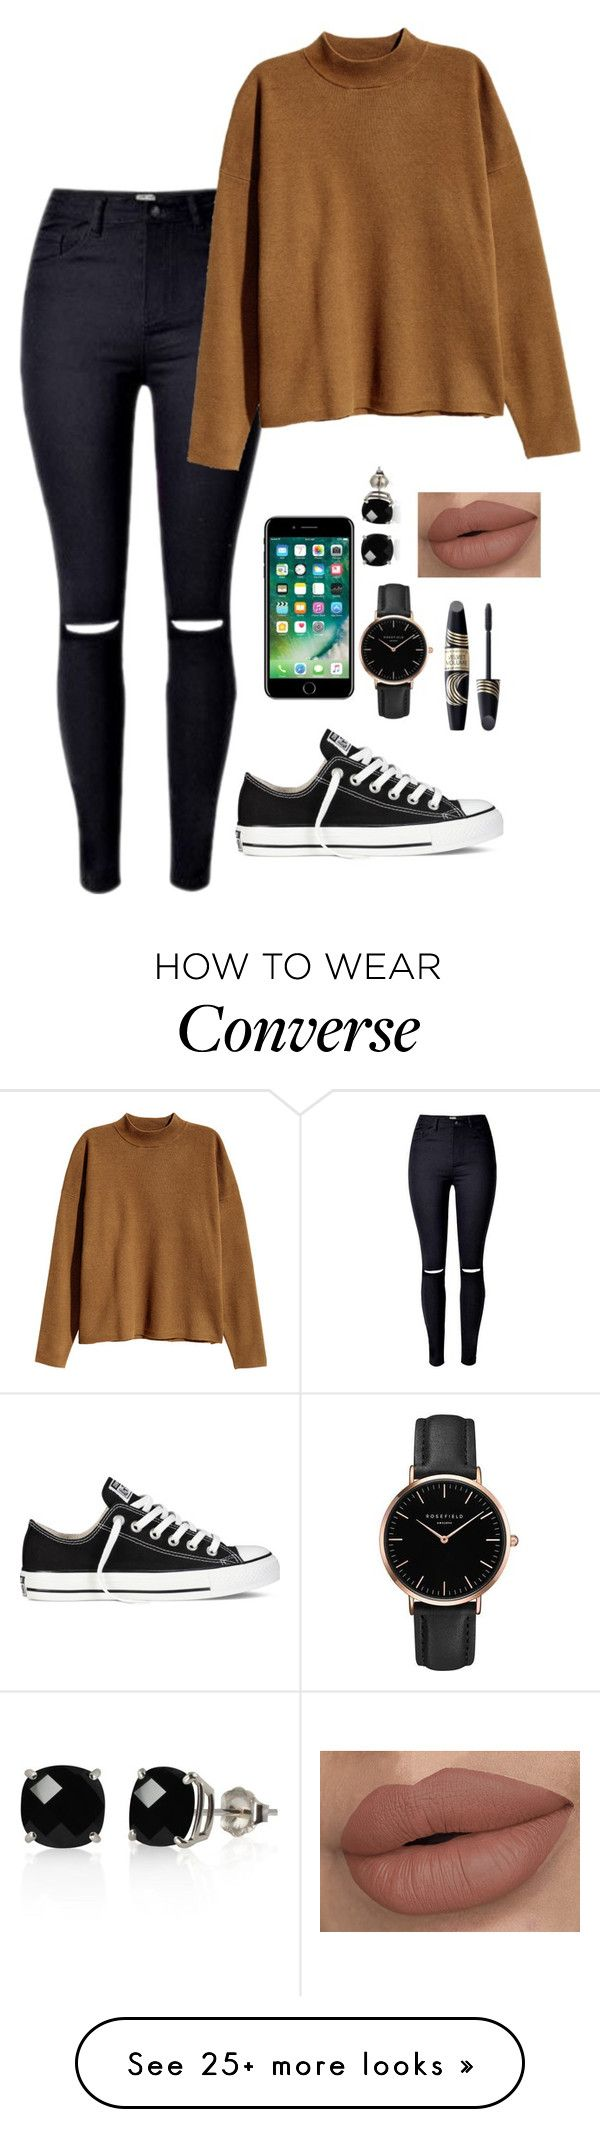 """'Dinner With David' - Mariana"" by briquel13287 on Polyvore featuring H&M, Converse, Topshop, Belk & Co. and Max Factor"